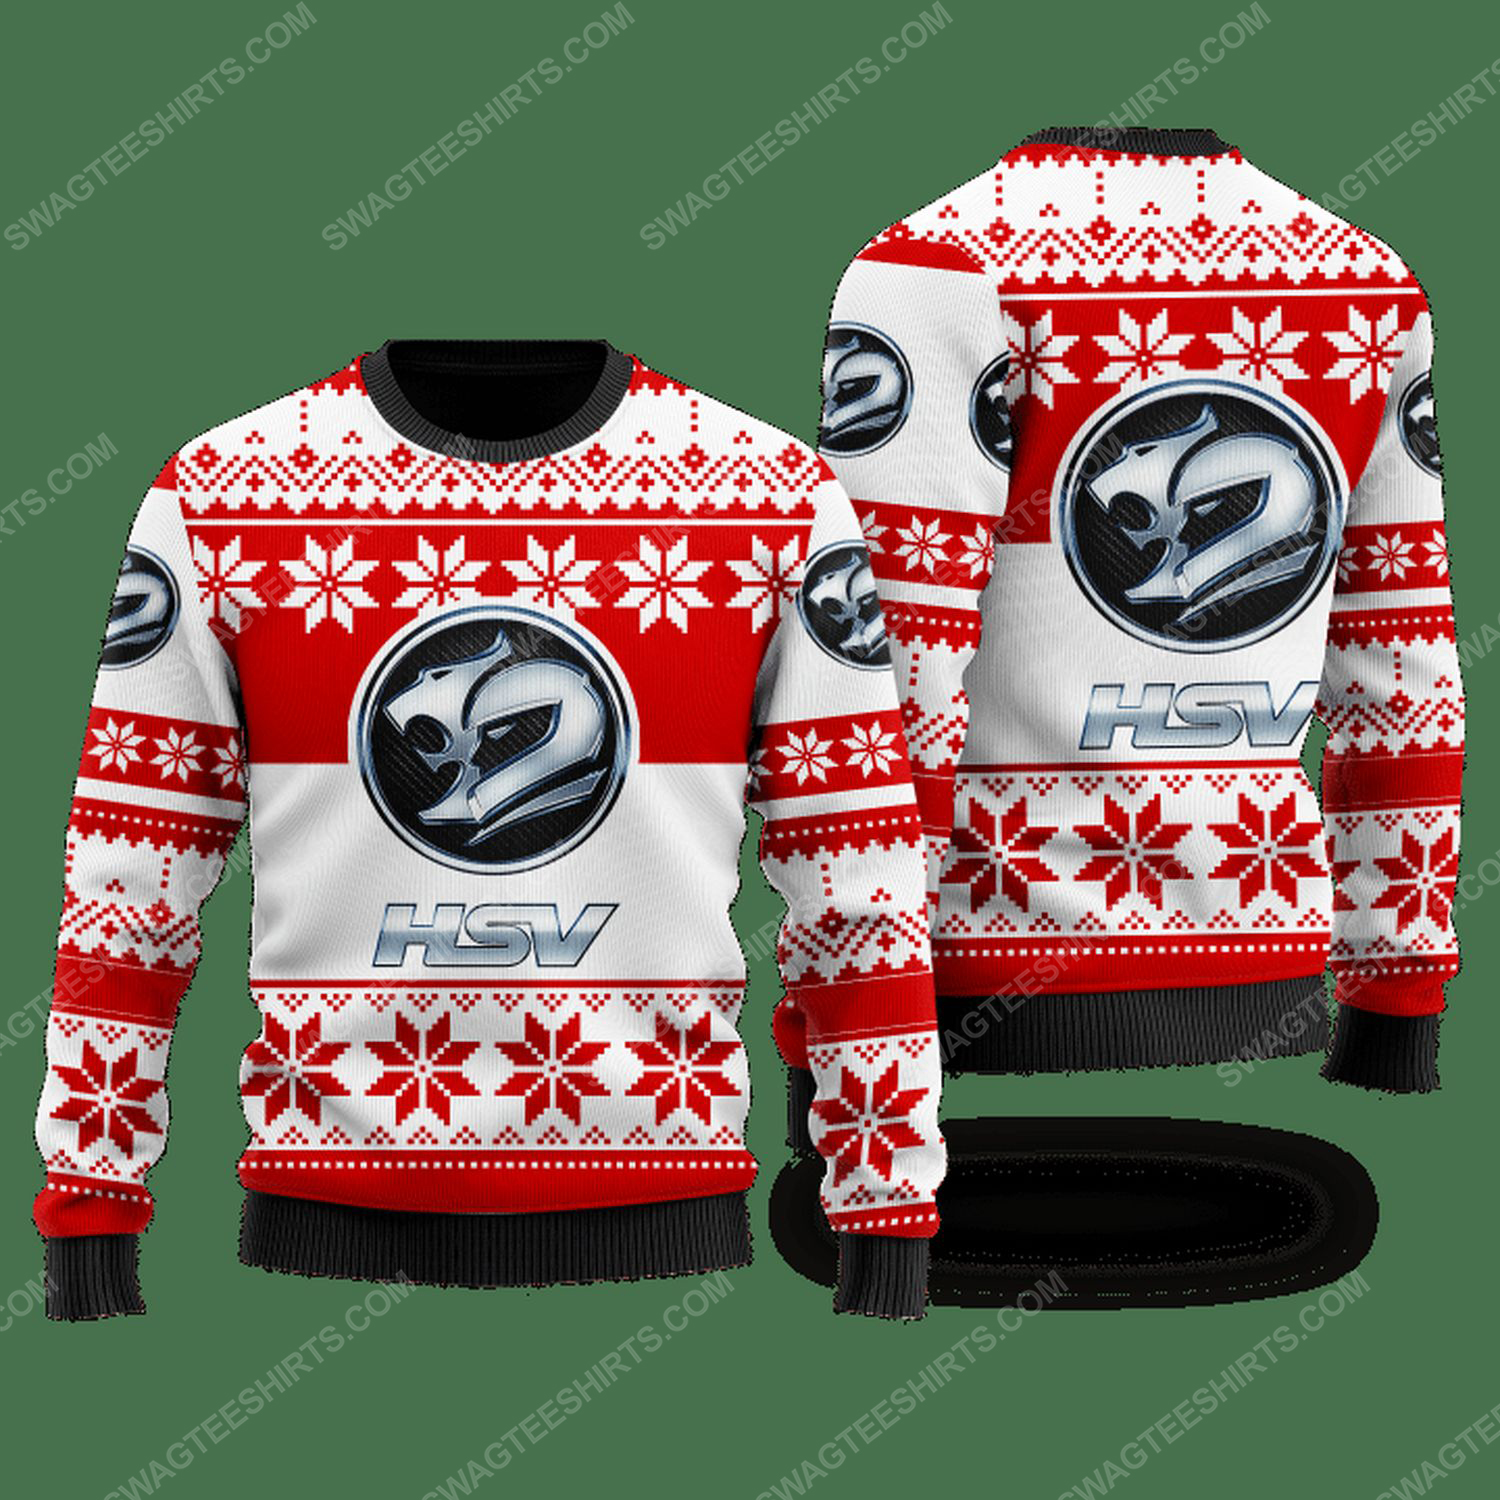 Holden special vehicles car ugly christmas sweater